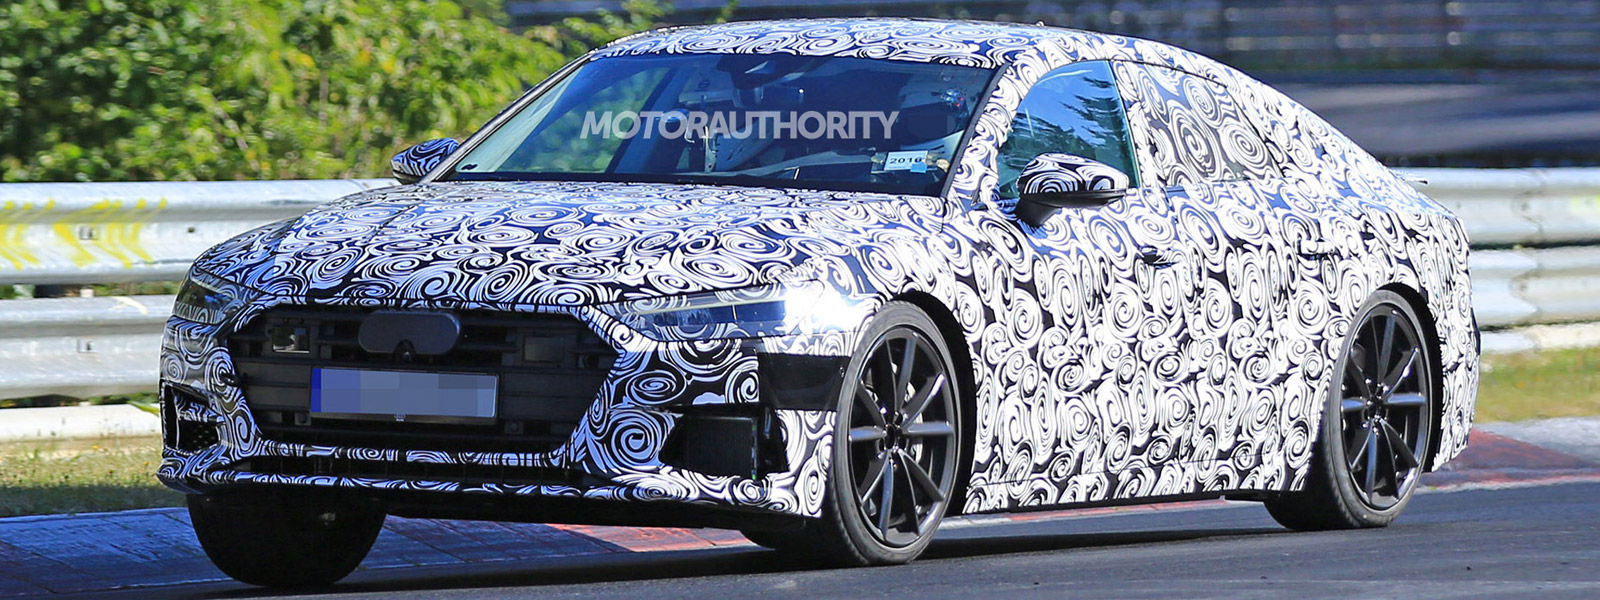 2018 audi rs7. contemporary audi the speedy s7 version shown above features the same cosmetic changes as  its a7 sibling but adds sporty quad exhaust tips and slightly lowered suspension intended 2018 audi rs7